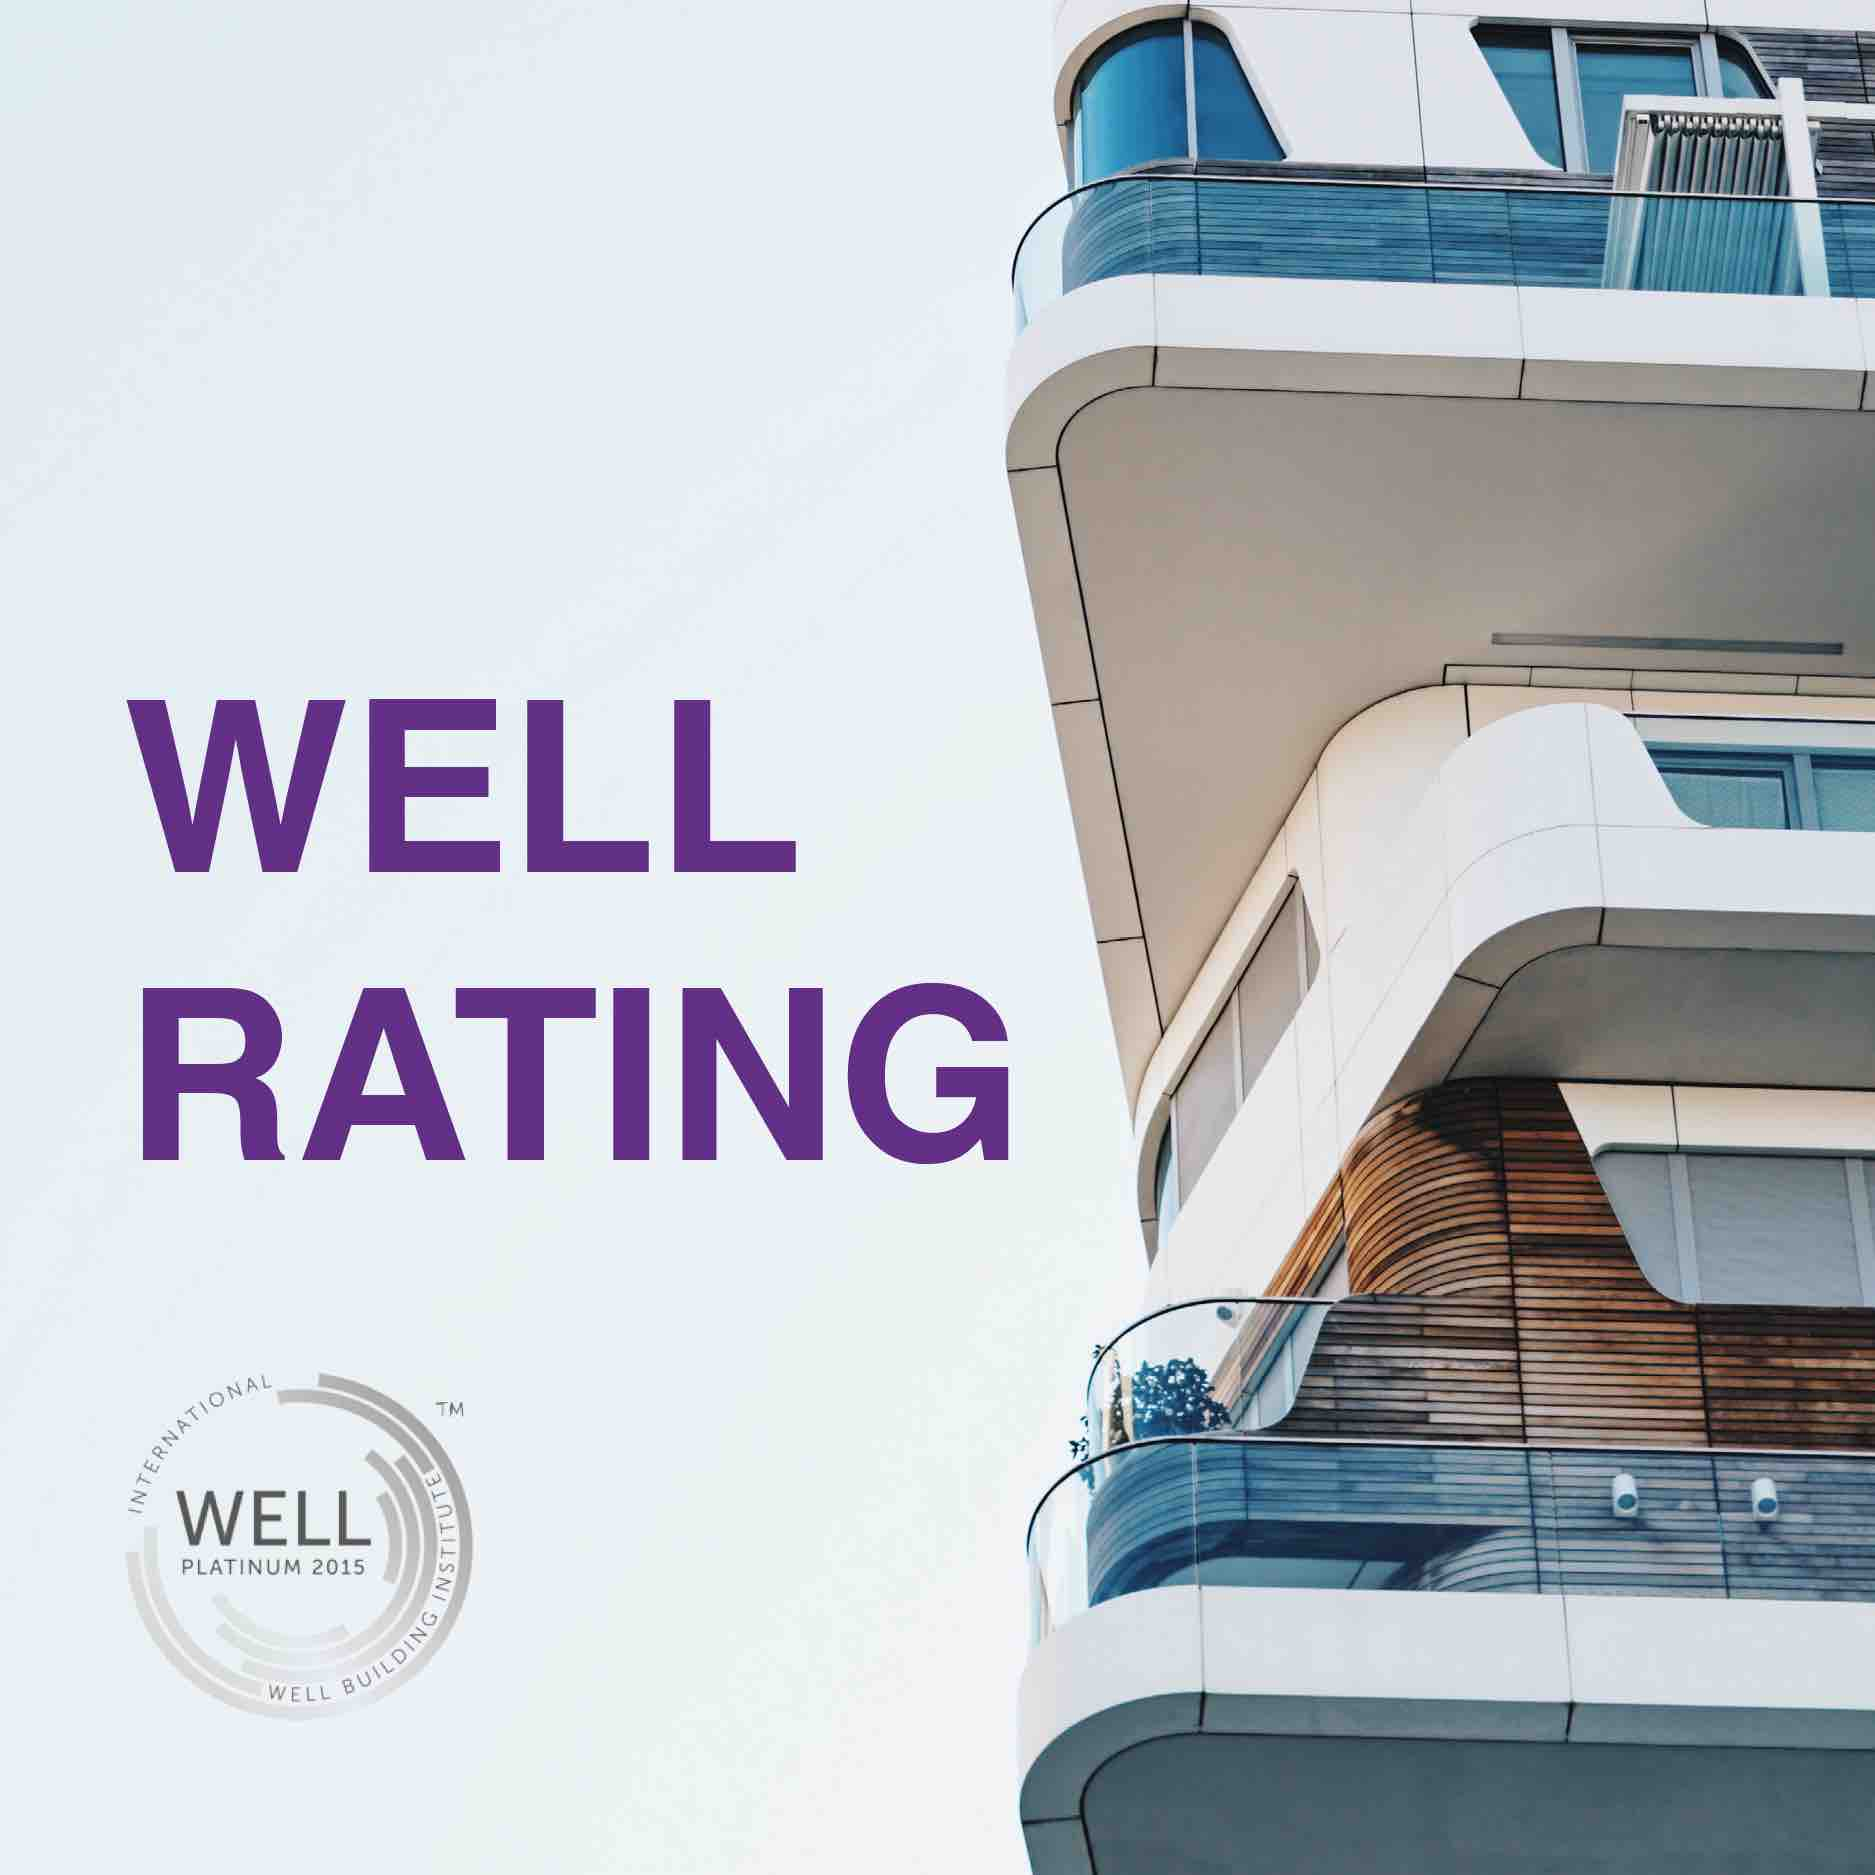 WELL RATING